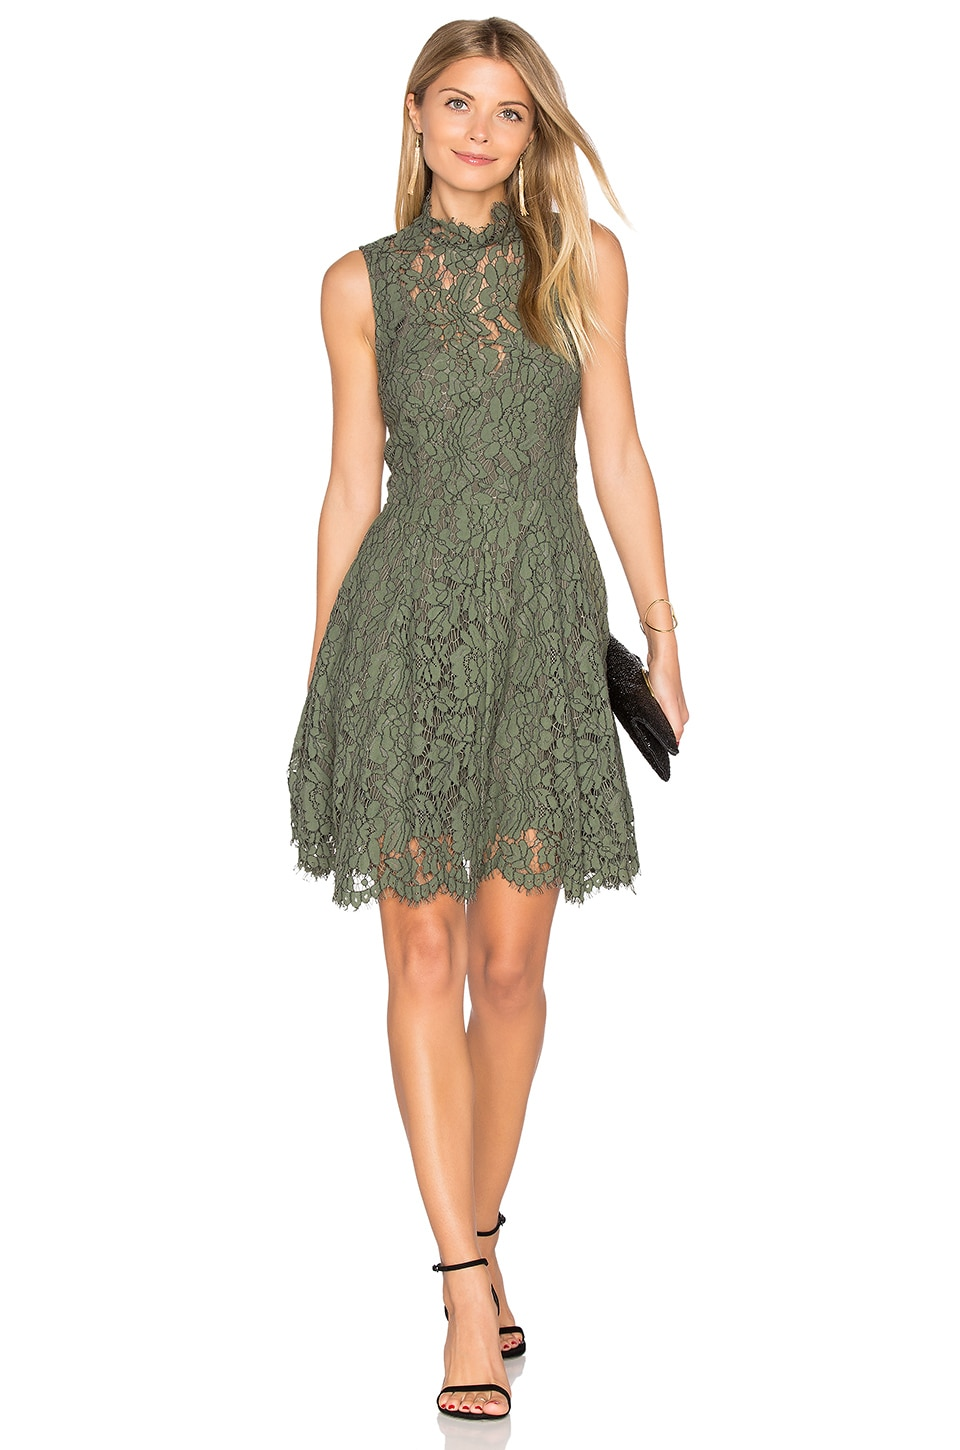 keepsake Porcelain Lace Mini Dress in Khaki